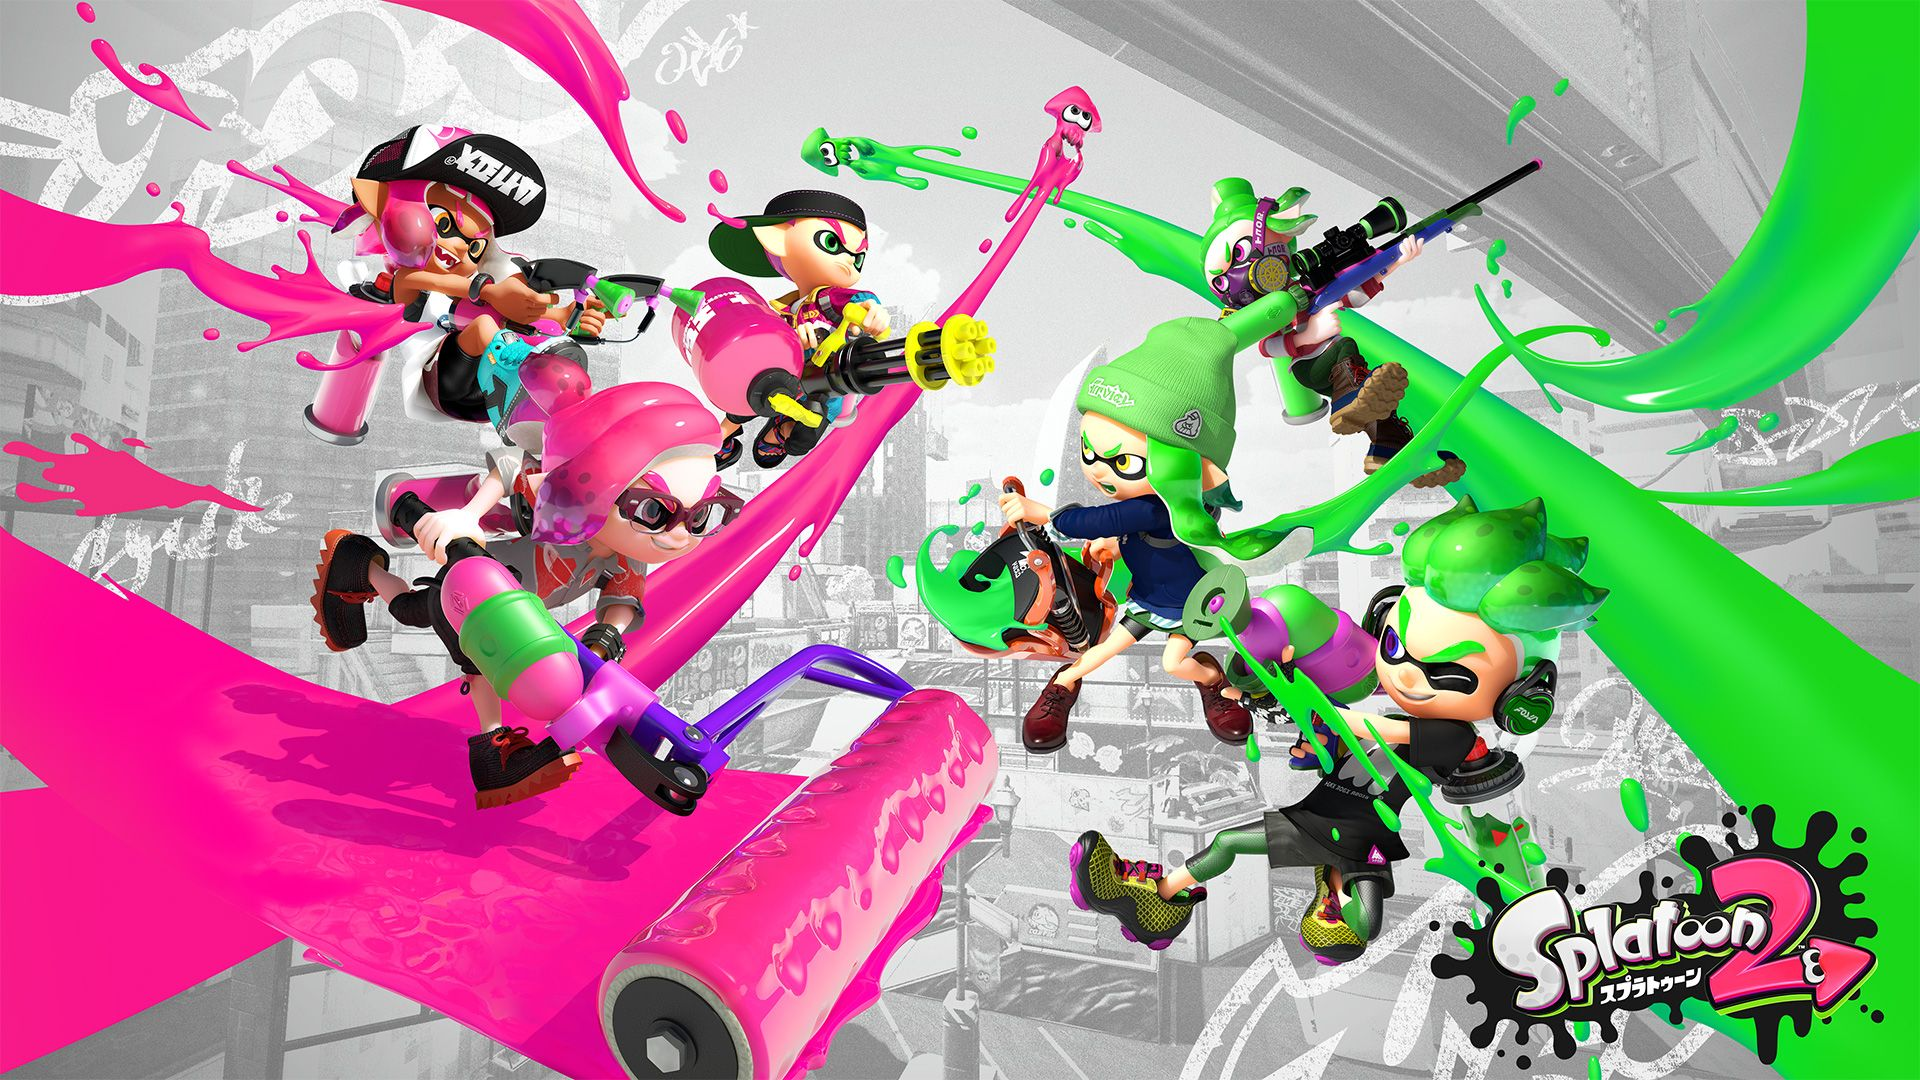 Nintendo Has Released Splatoon 2 Themed Wallpapers For Mobile And Desktop View Download Them Here Splatoon Wallpaper Character Wallpaper